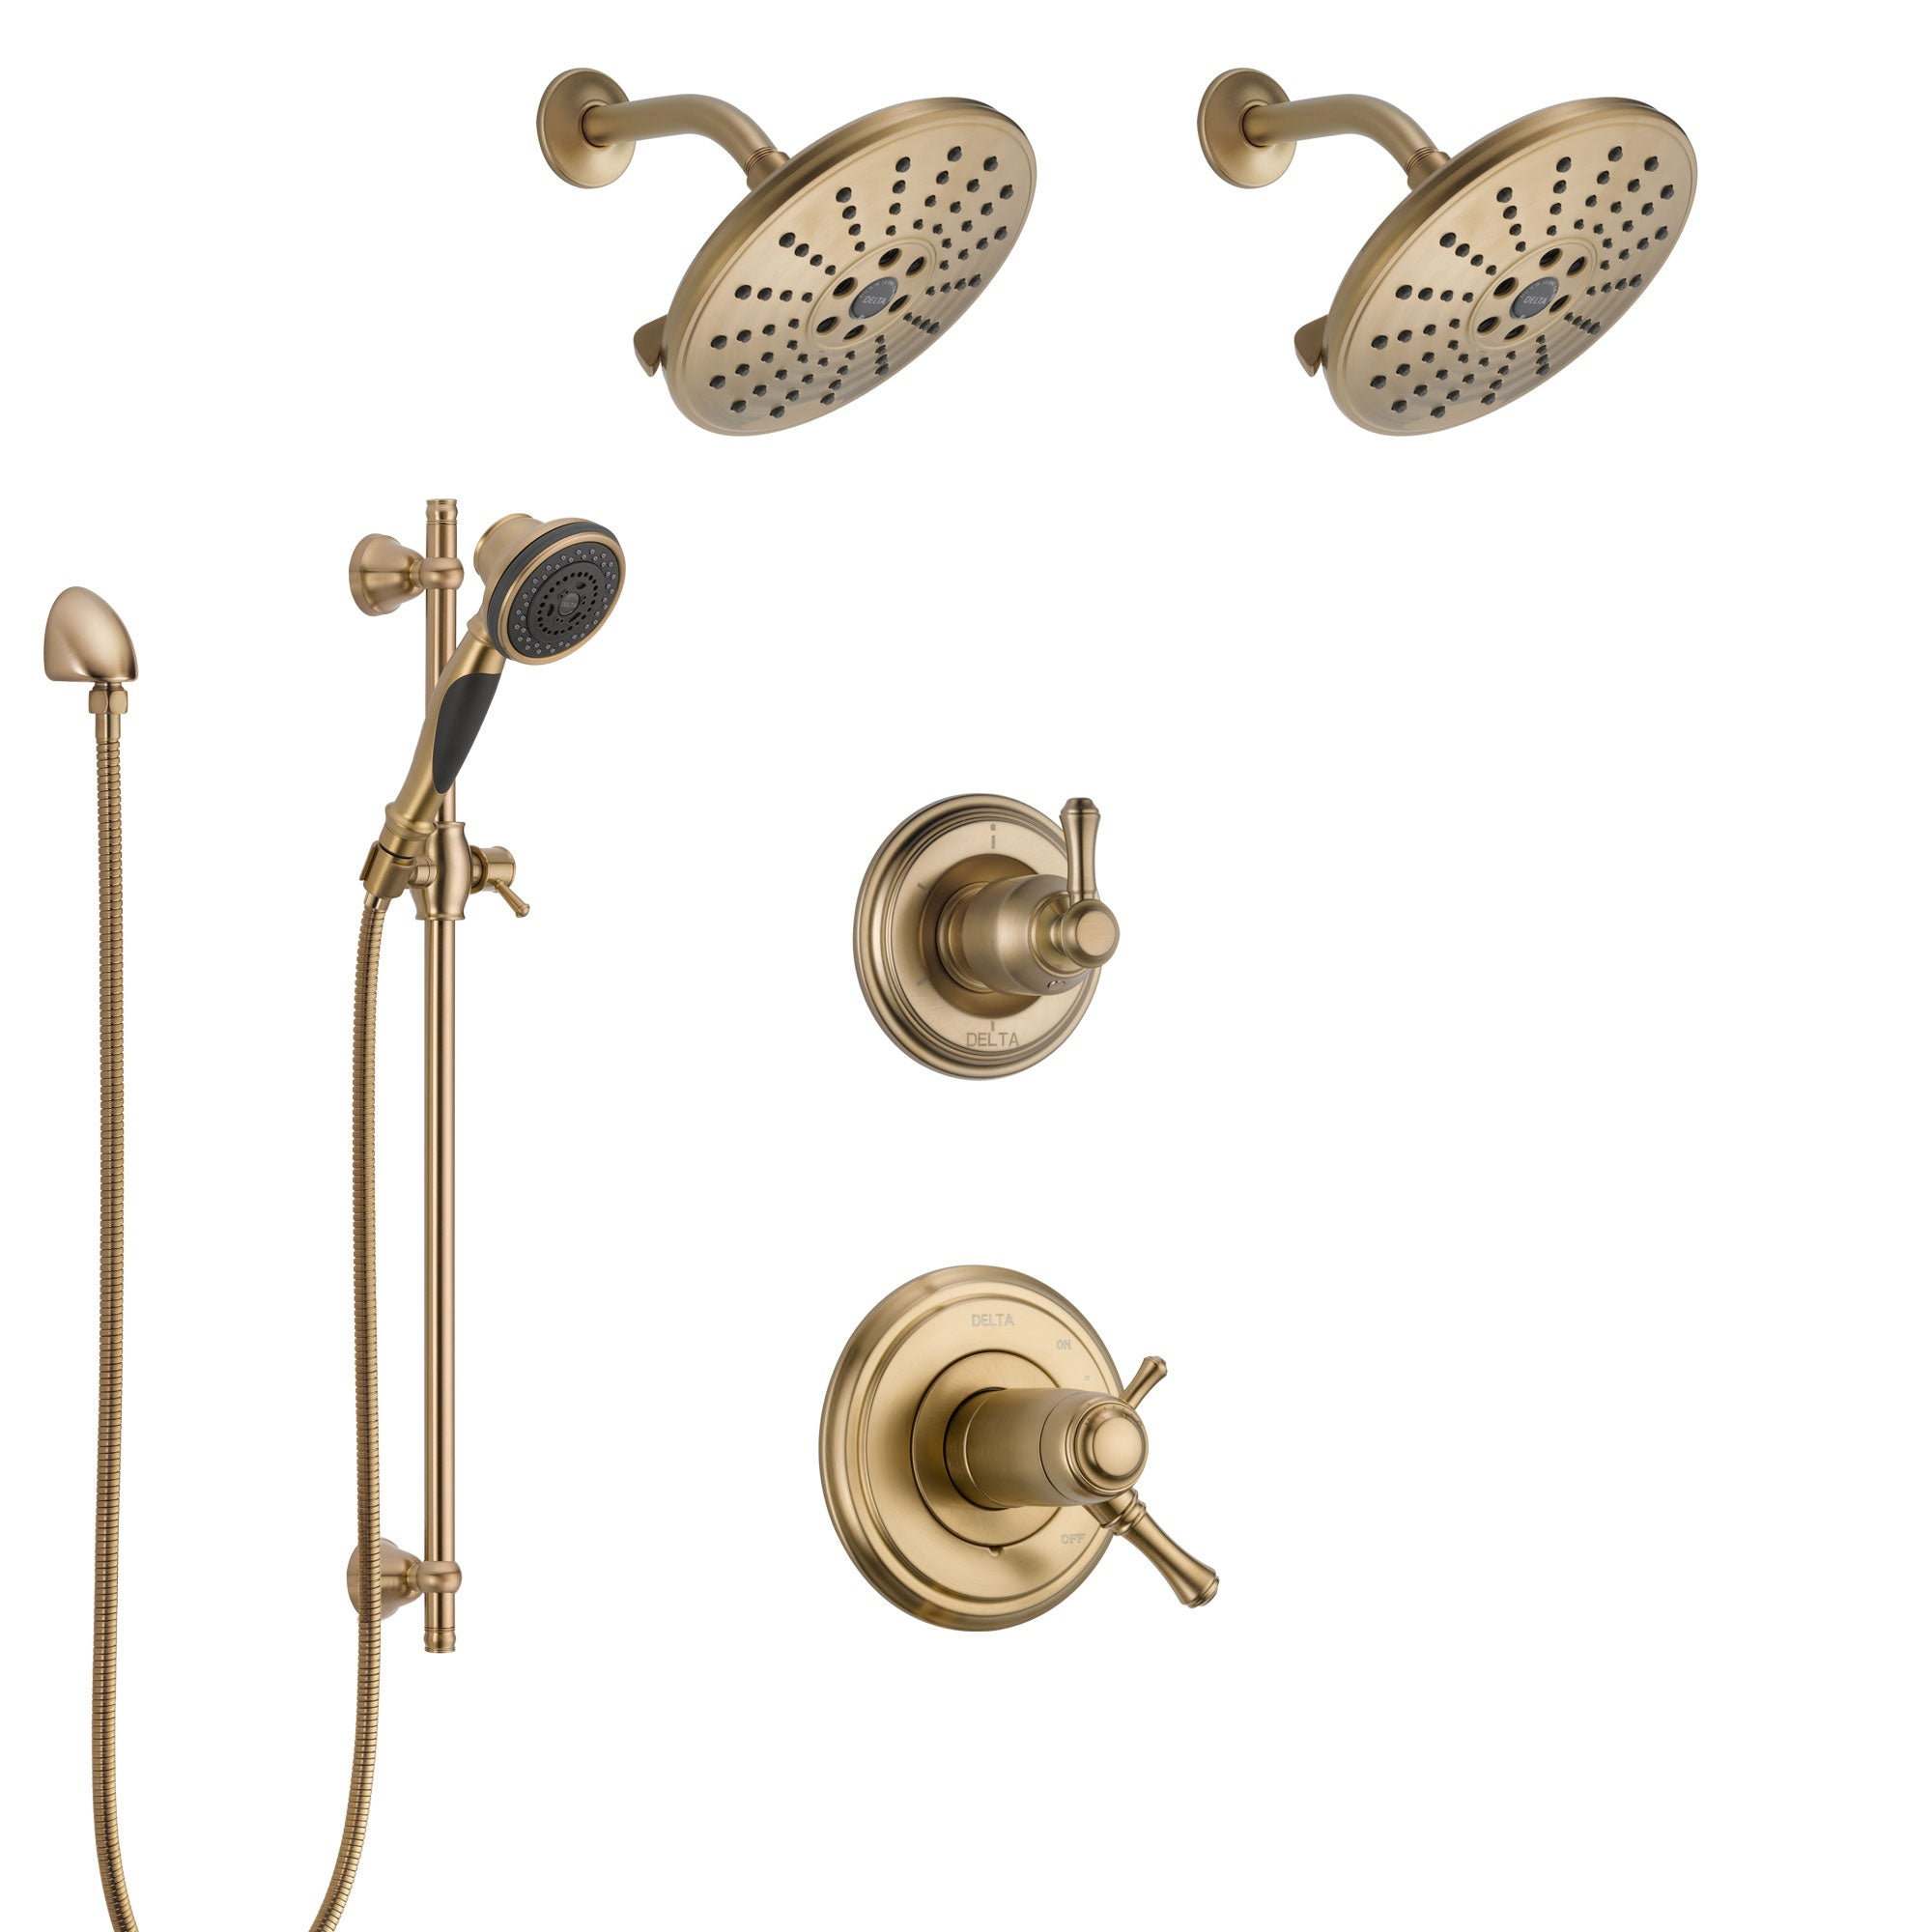 Delta Cassidy Champagne Bronze Shower System with Dual Thermostatic Control Handle, 6-Setting Diverter, 2 Showerheads, Hand Shower SS17T972CZ6